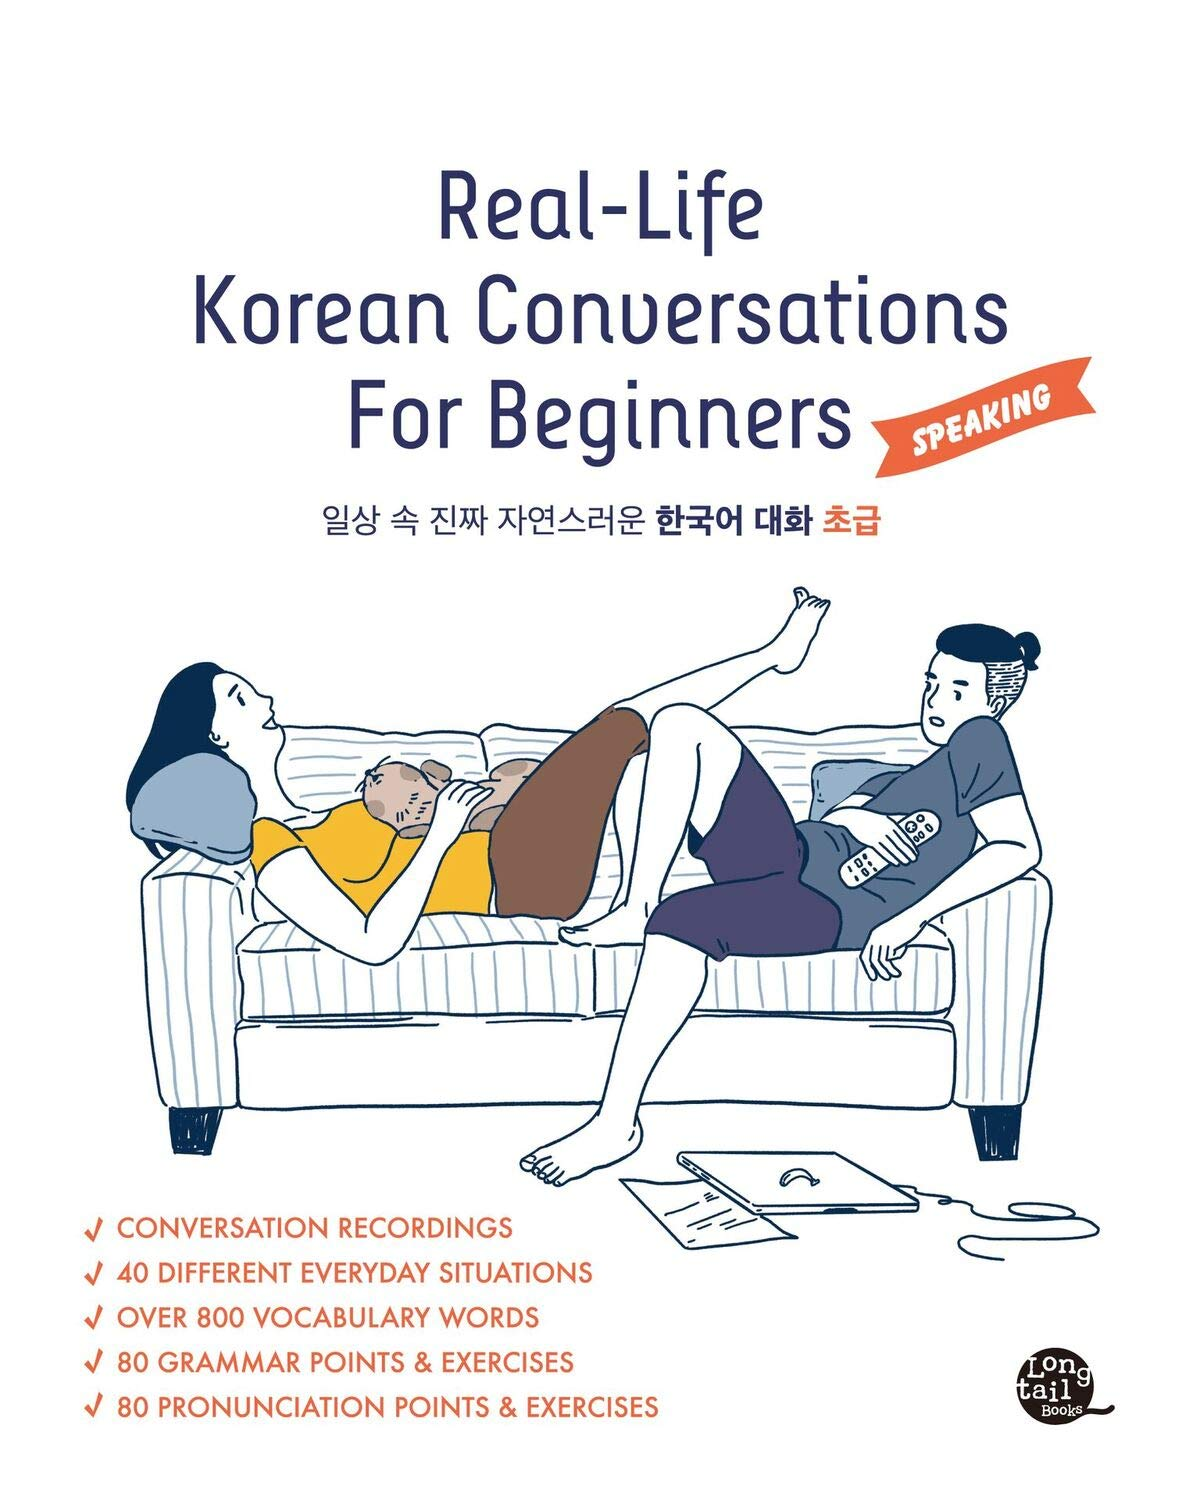 Real-Life Korean Conversations